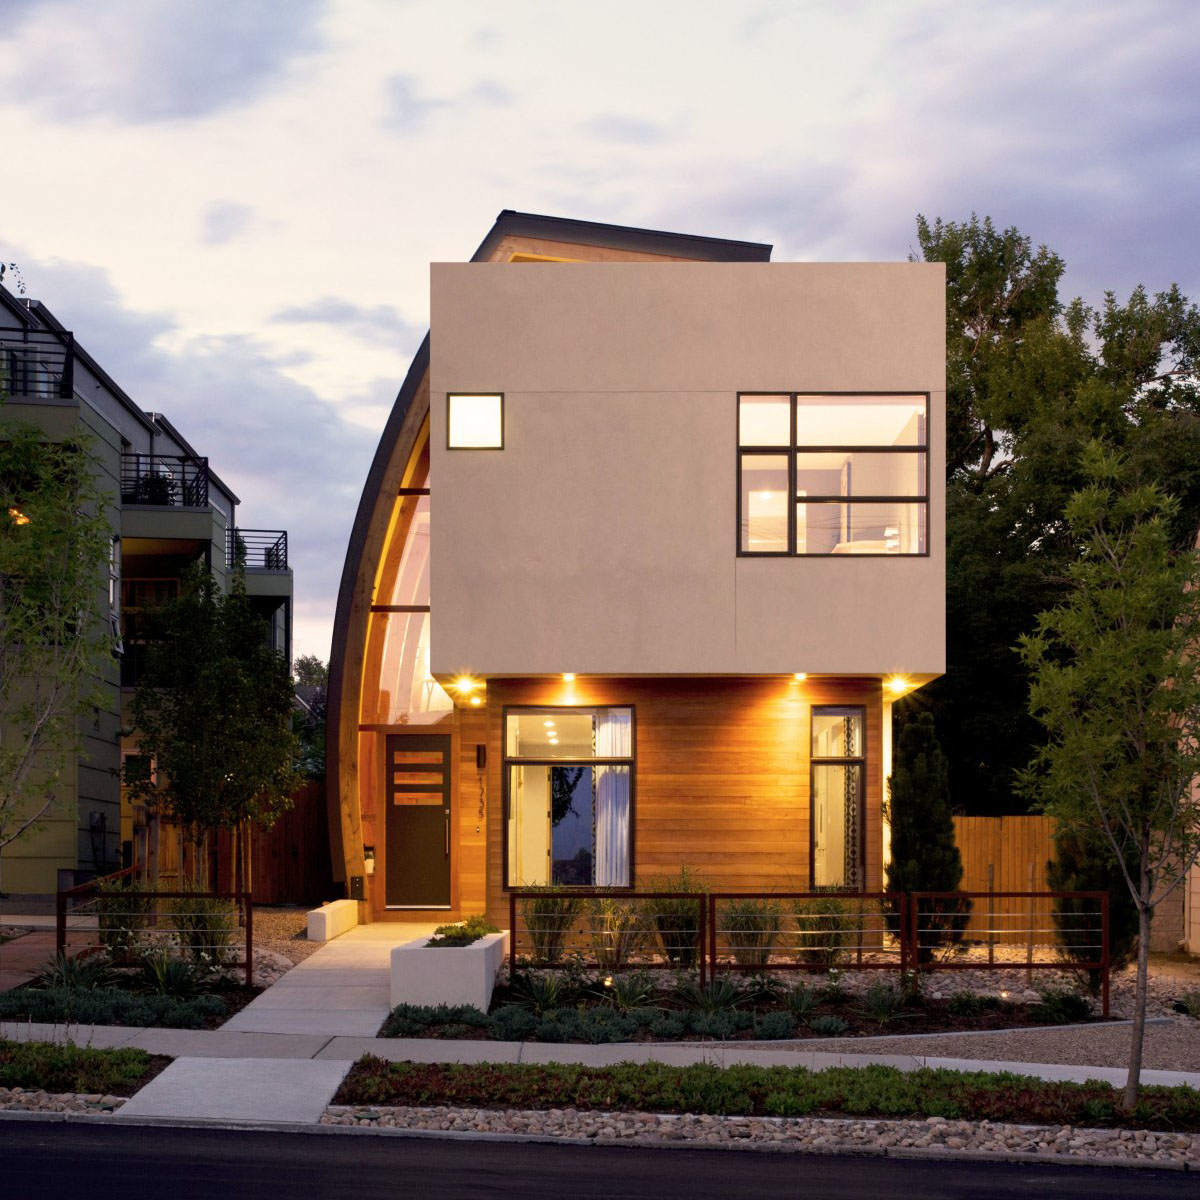 Inspiring Urban Infill With Sun Catching Curve Metal: contemporary housing